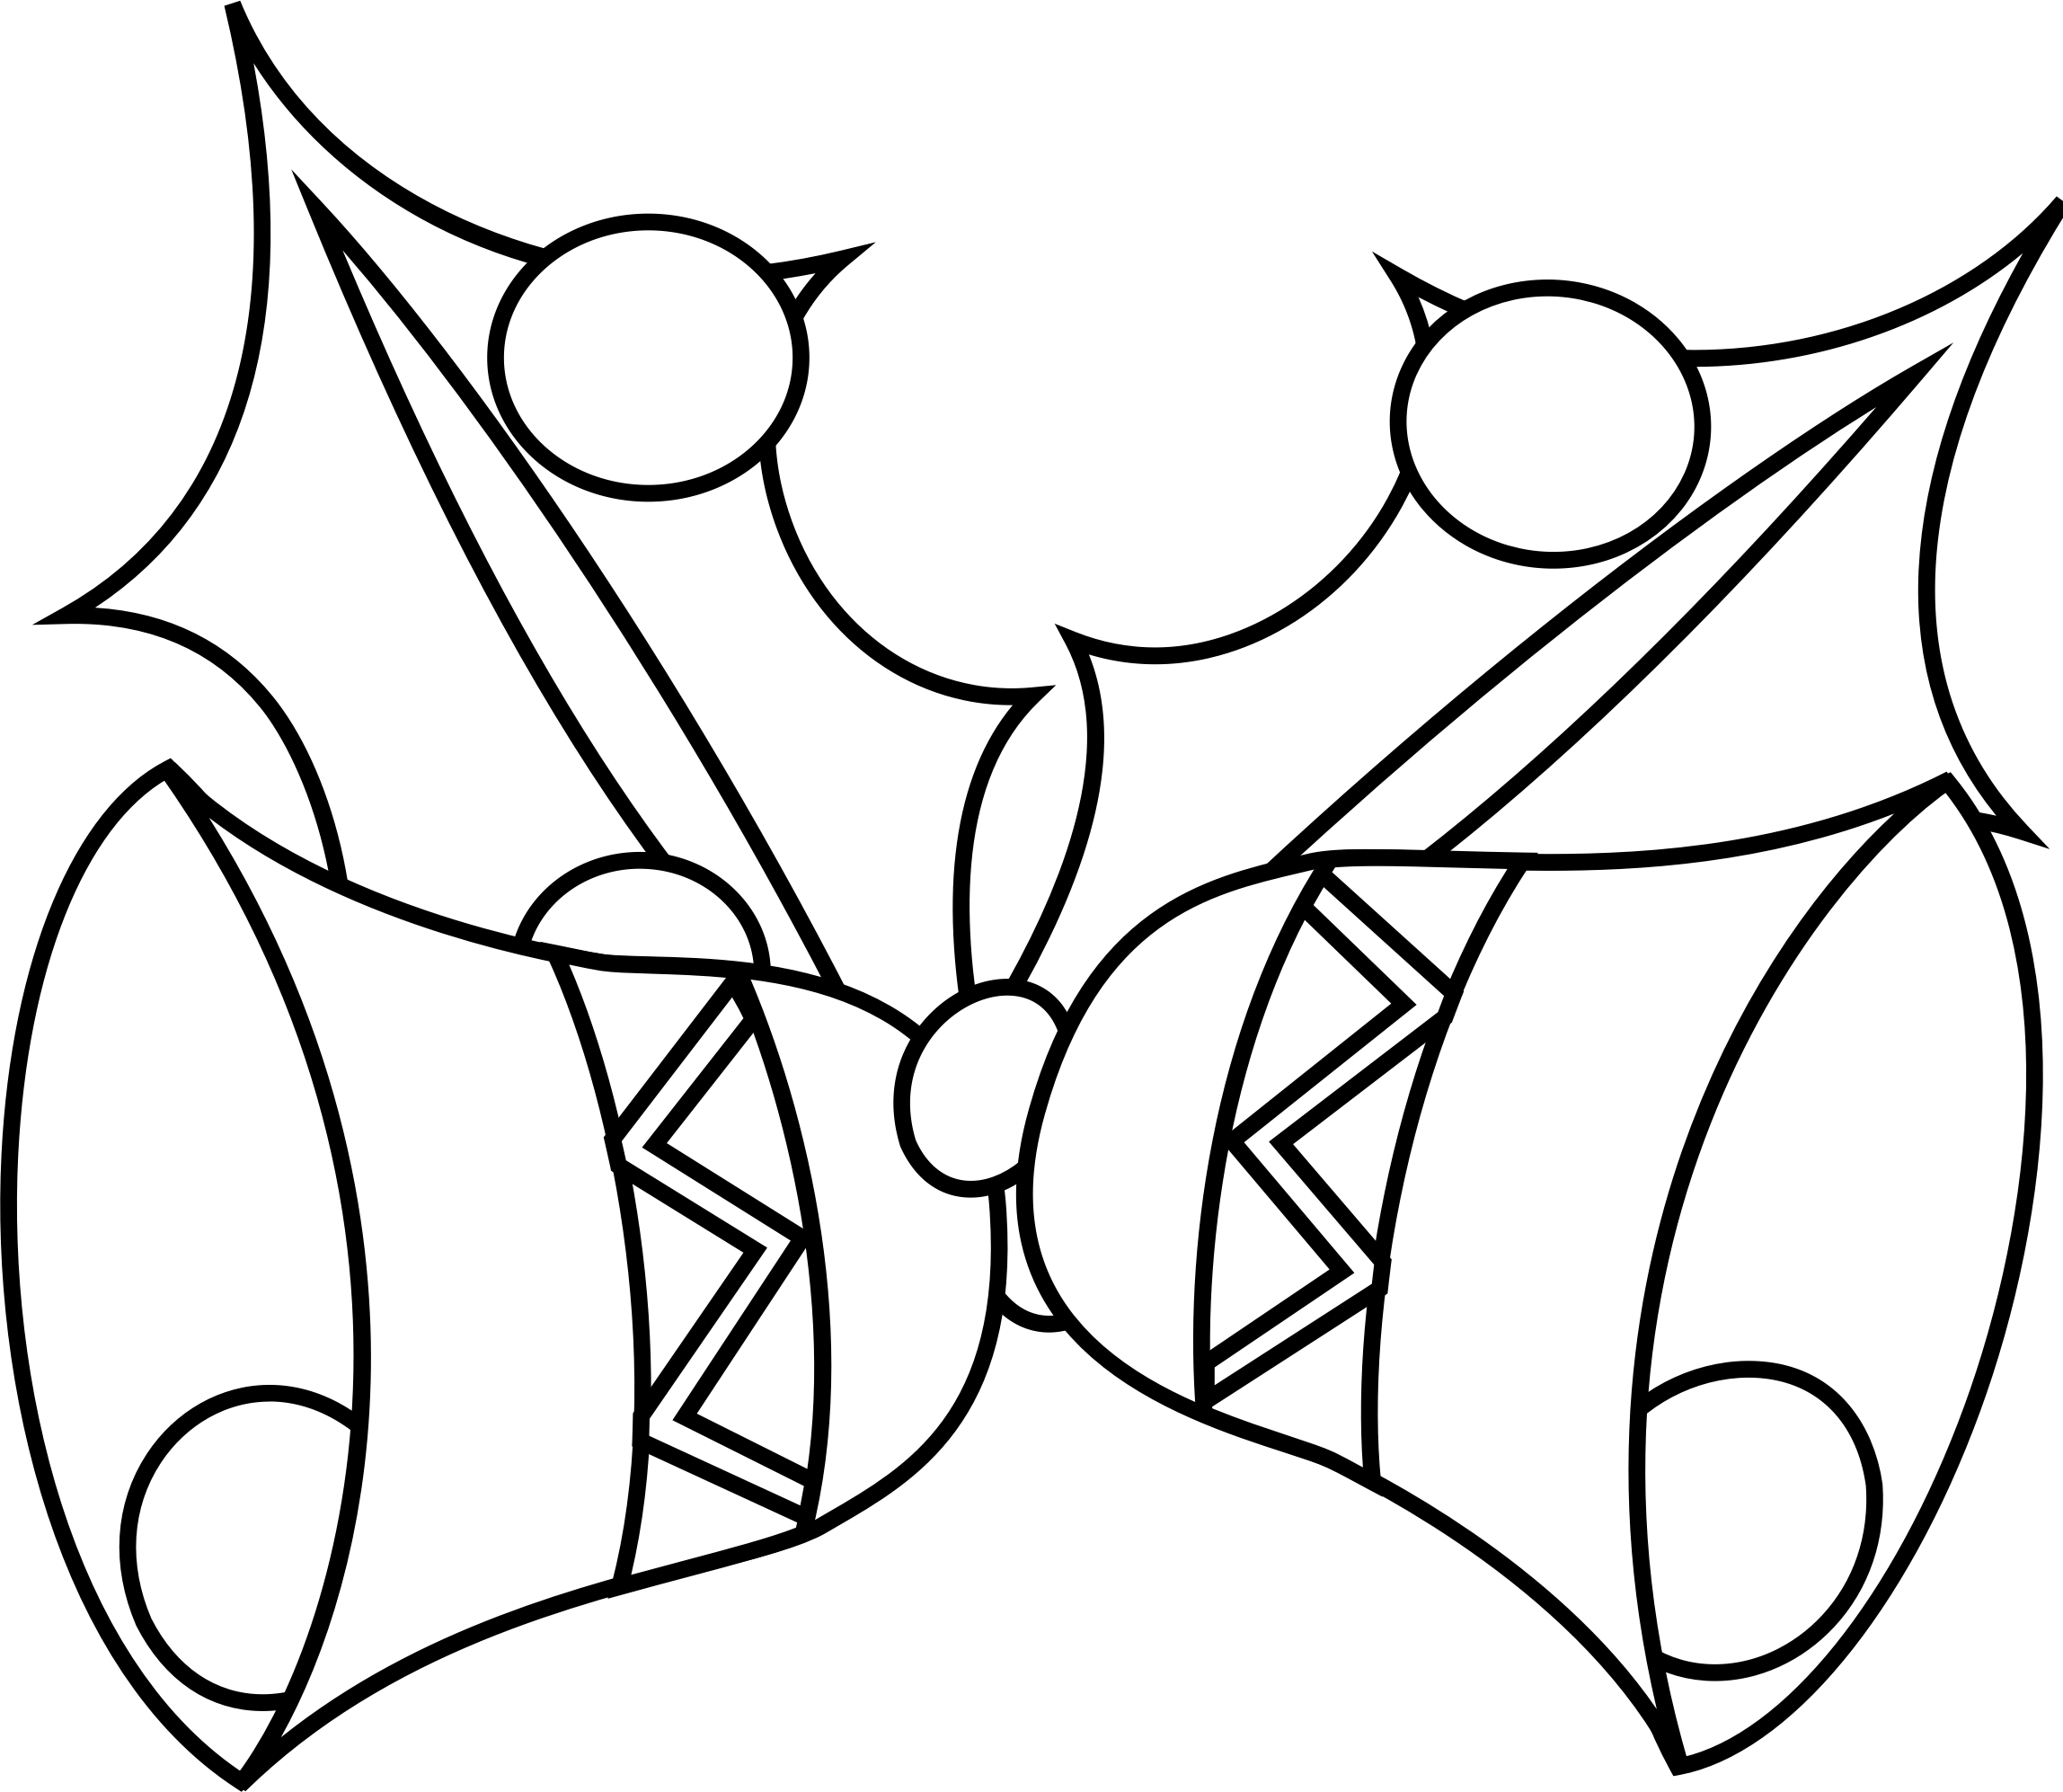 Coloring book clipart black and white image free Clipart - Jingle Bells Coloring Book image free